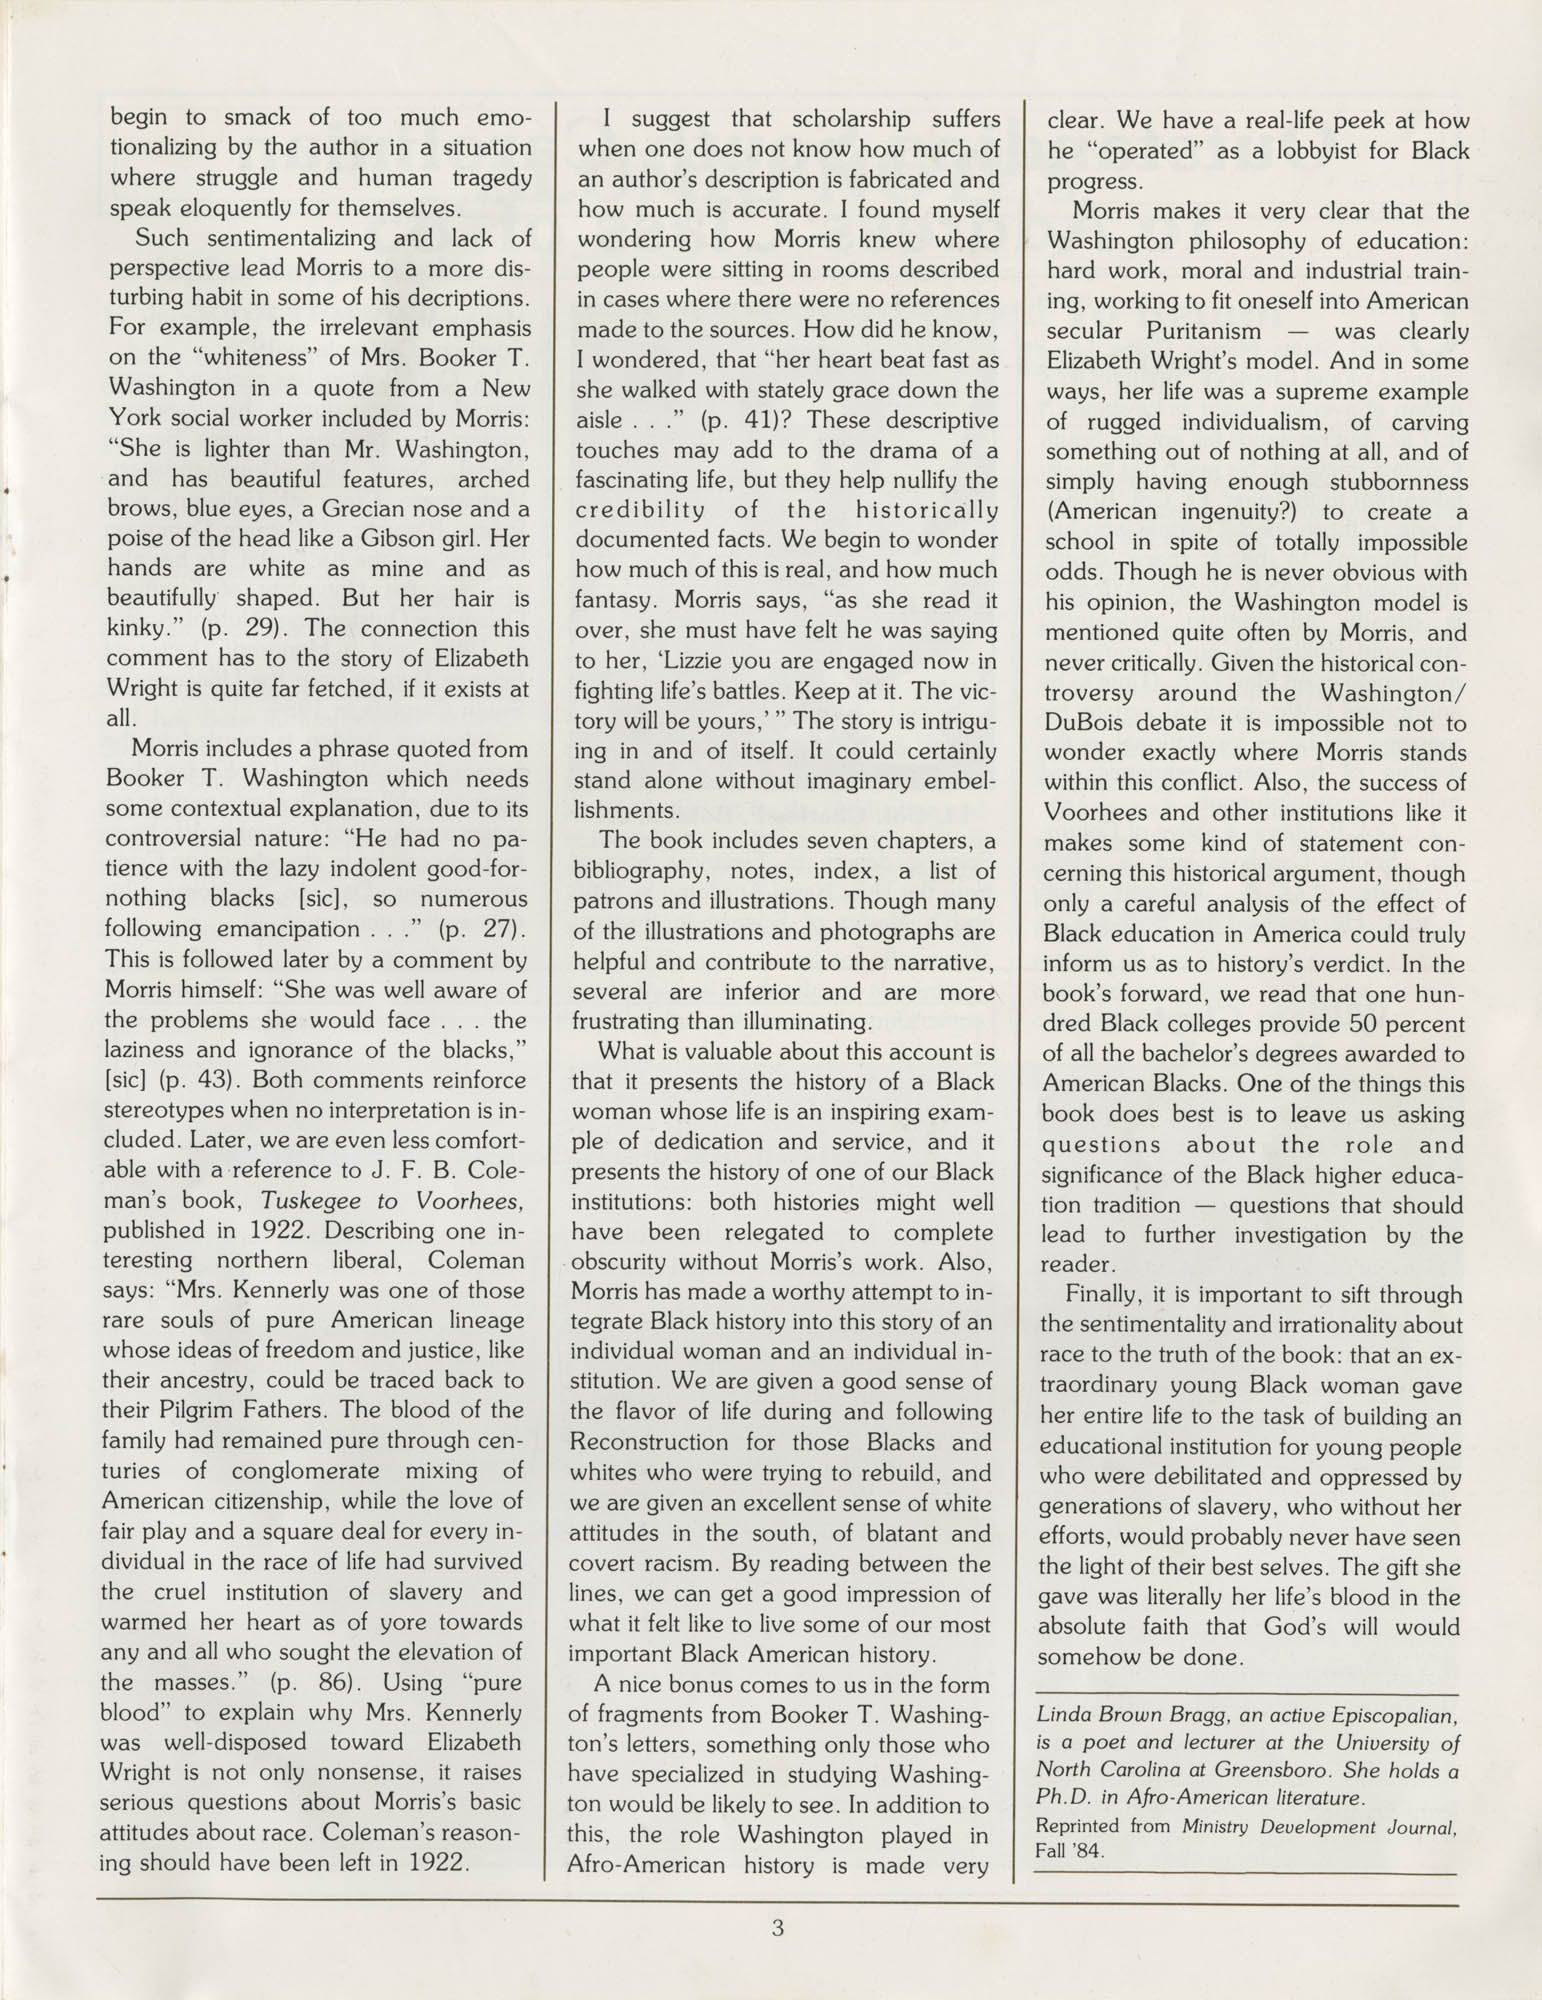 Voorhees Voice, Volume 2, Number 1, April 1985, Page 3